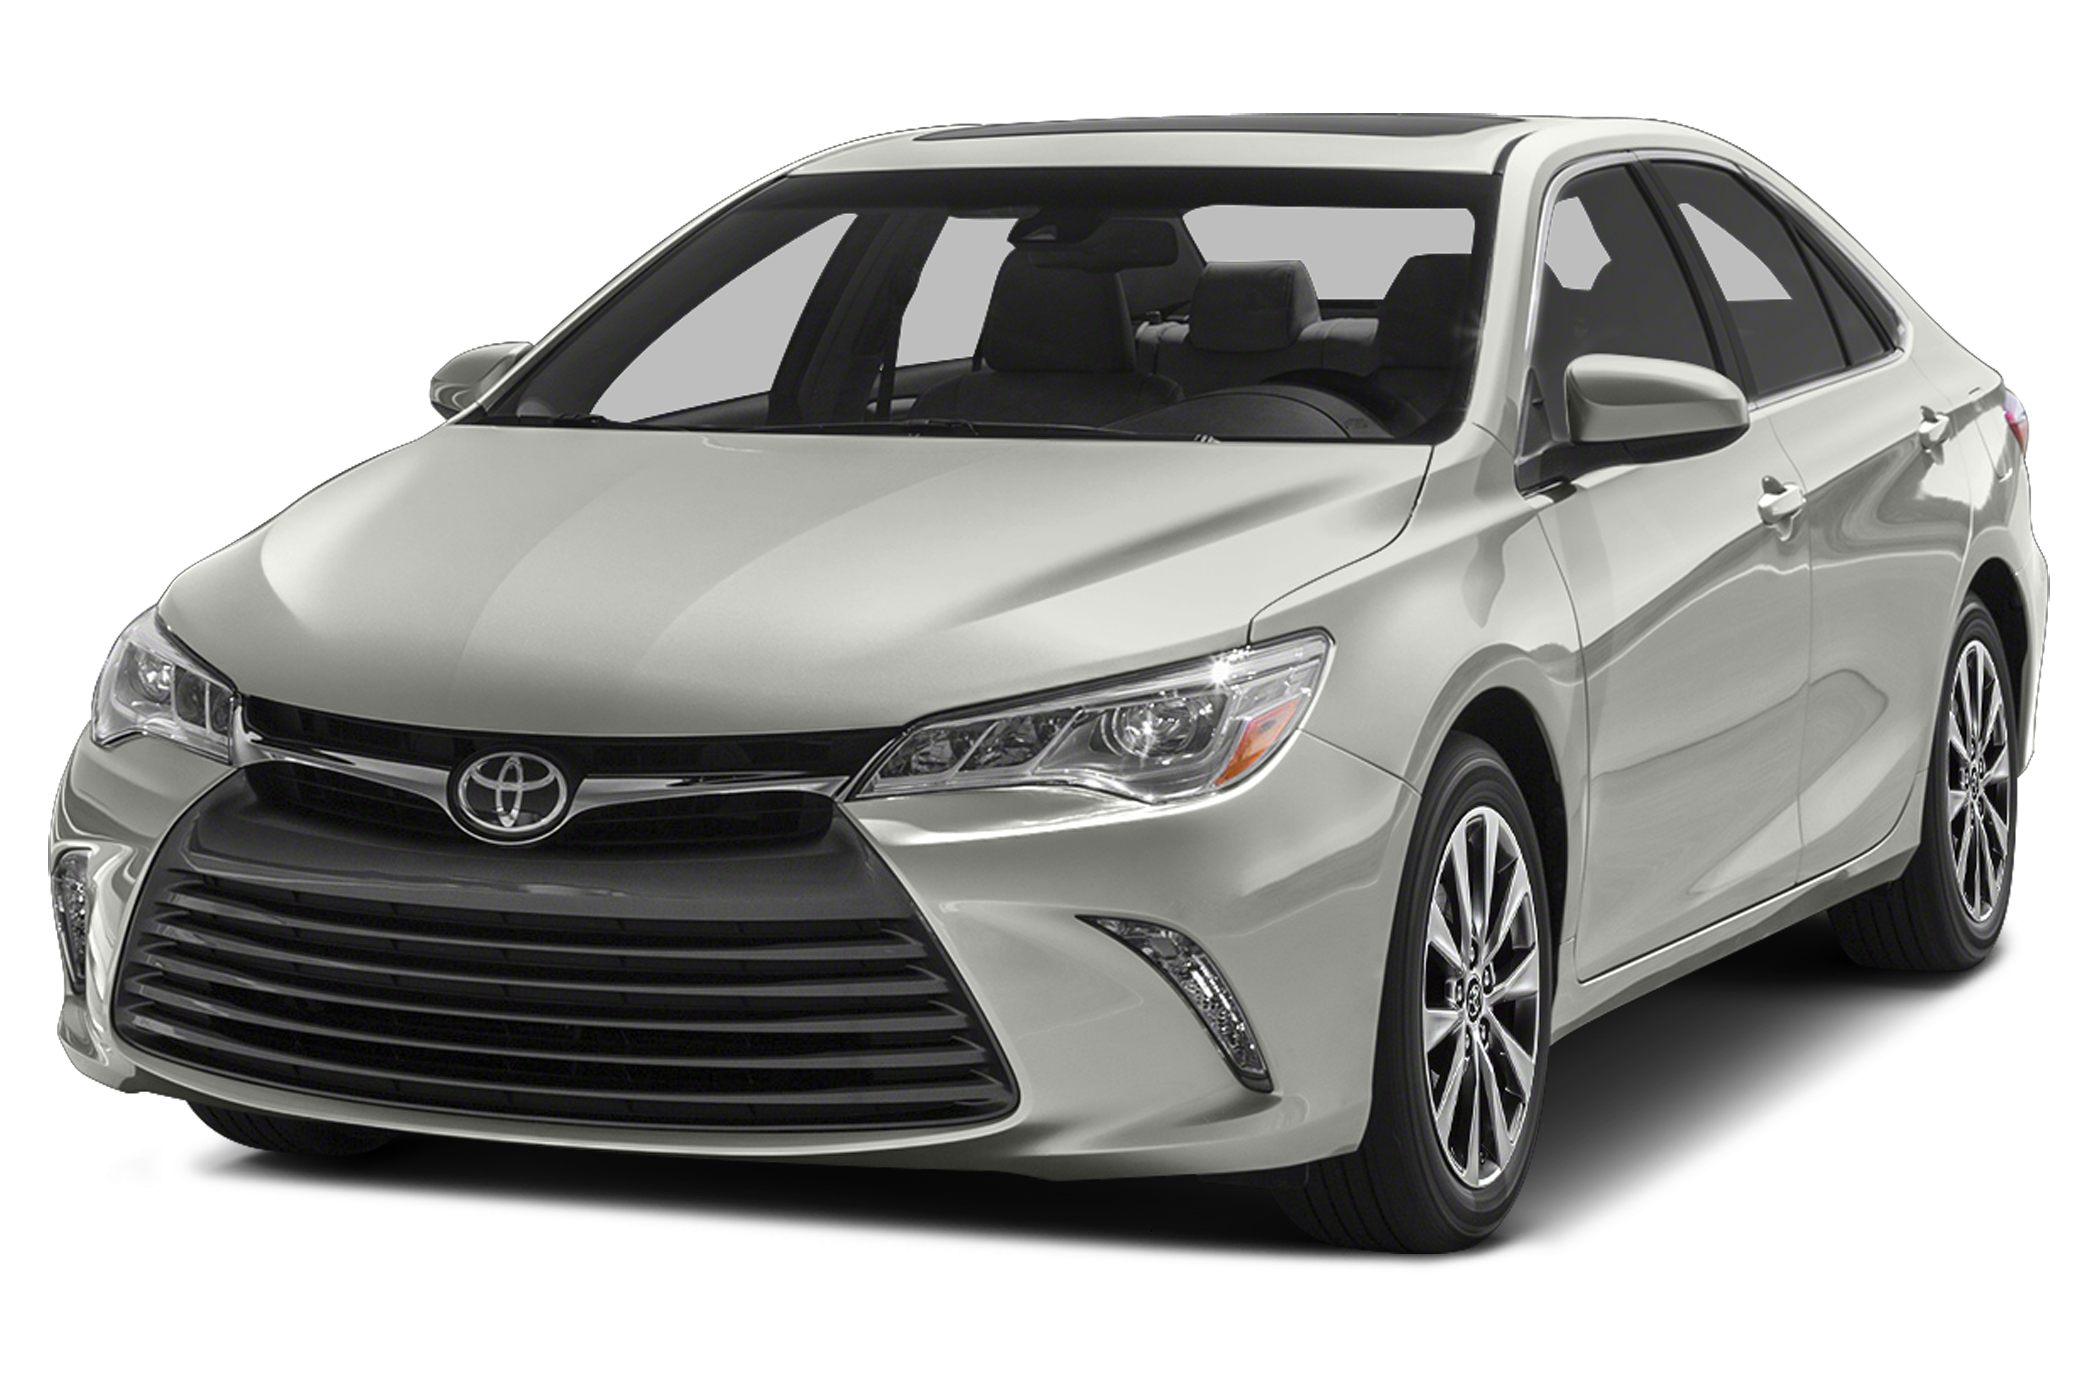 2015 Toyota Camry LE Sedan for sale in Owings Mills for $20,083 with 0 miles.